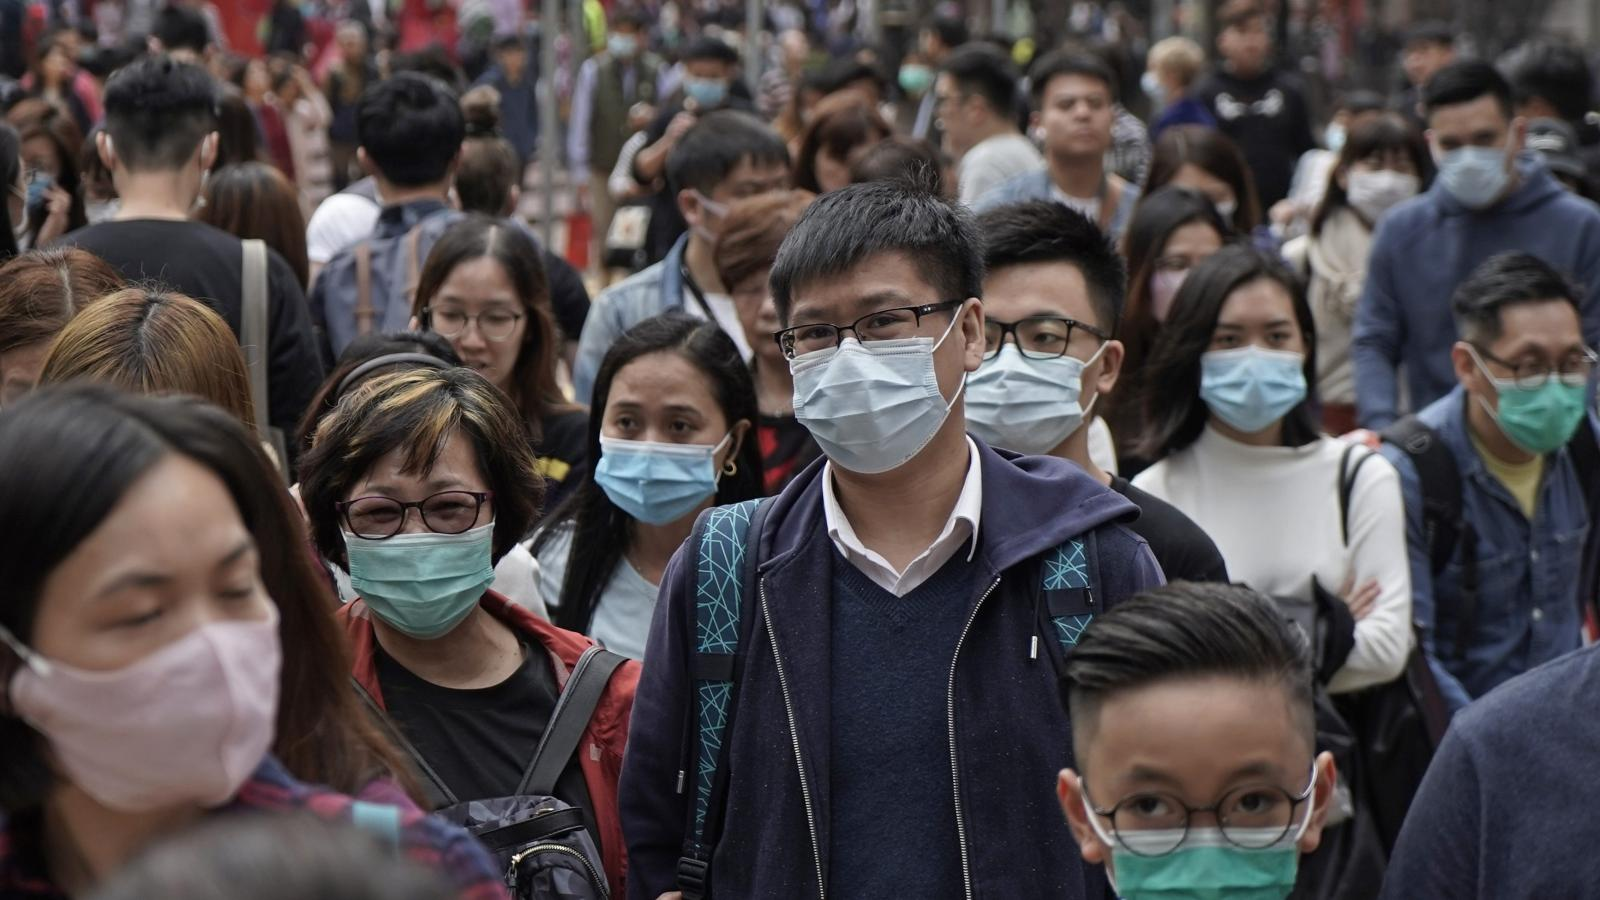 Will The Wuhan Virus Become A Pandemic?